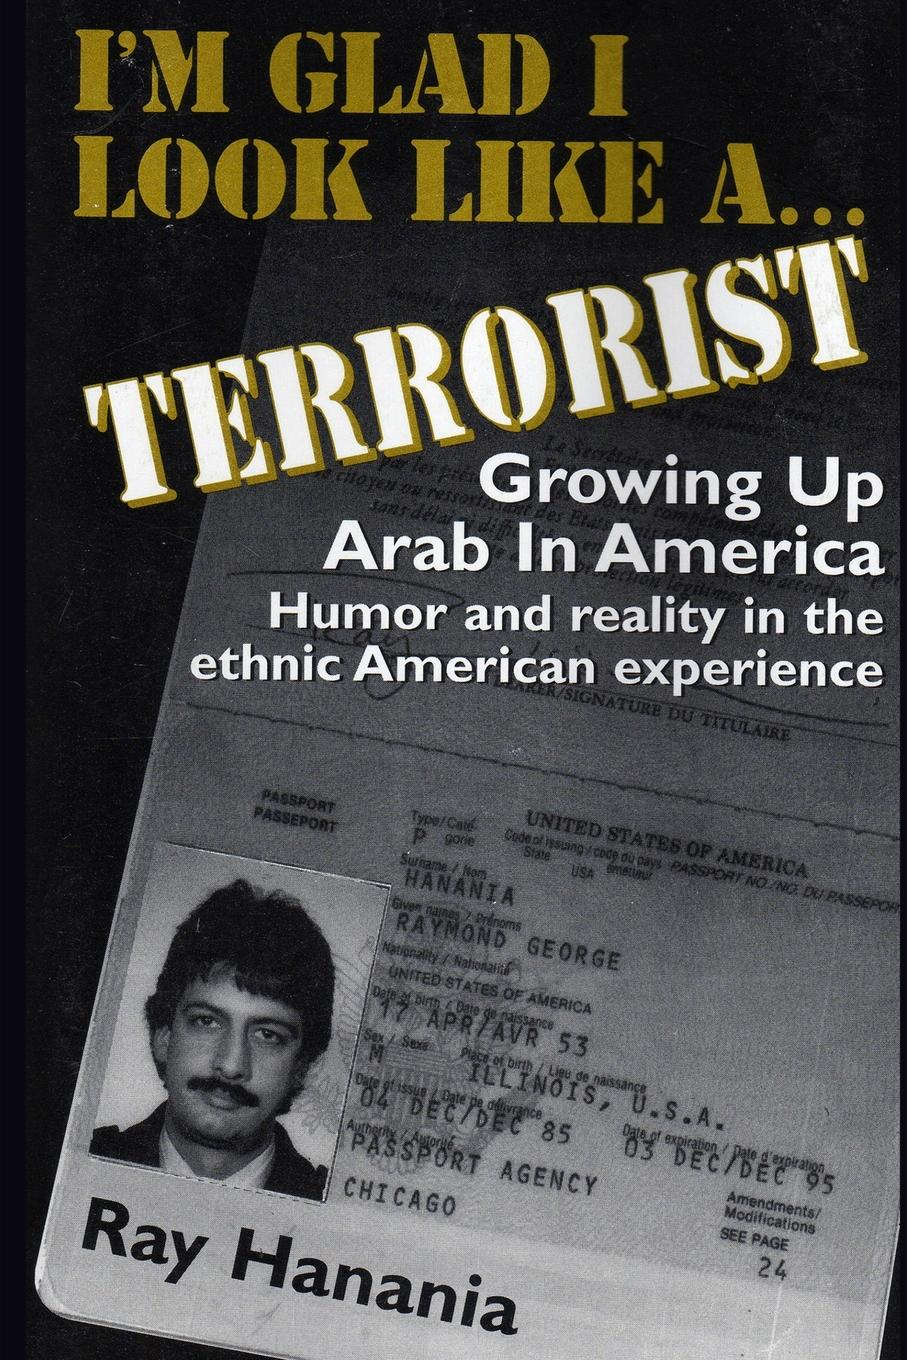 Ray Hanania I.m Glad I Look Like a Terrorist. Growing up Arab in America ray hanania i m glad i look like a terrorist growing up arab in america